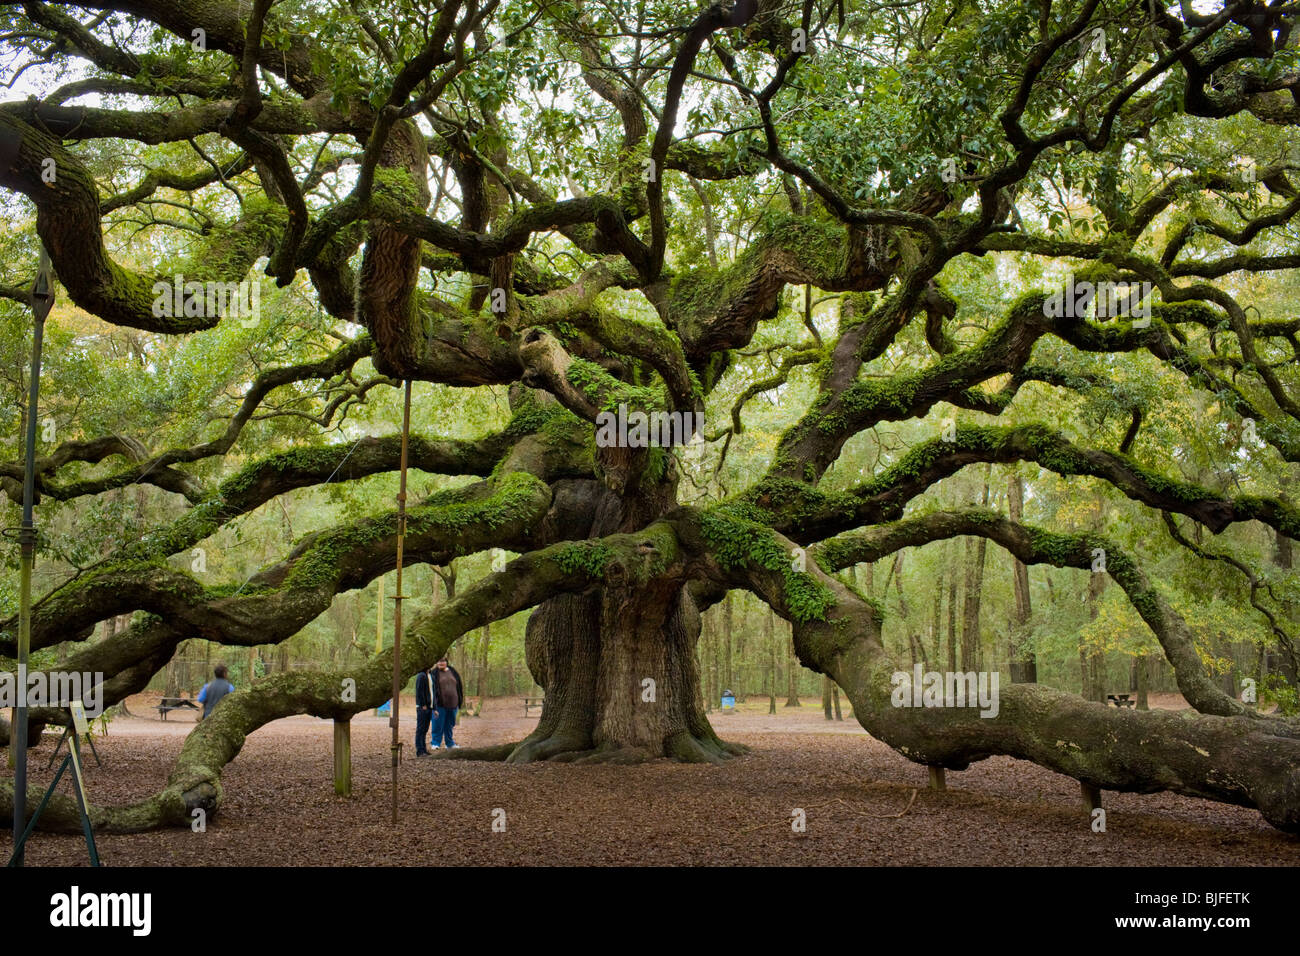 The Angel Oak, quercus virginiana, largest southern live oak in the world, near Charleston, South Carolina, USA. - Stock Image